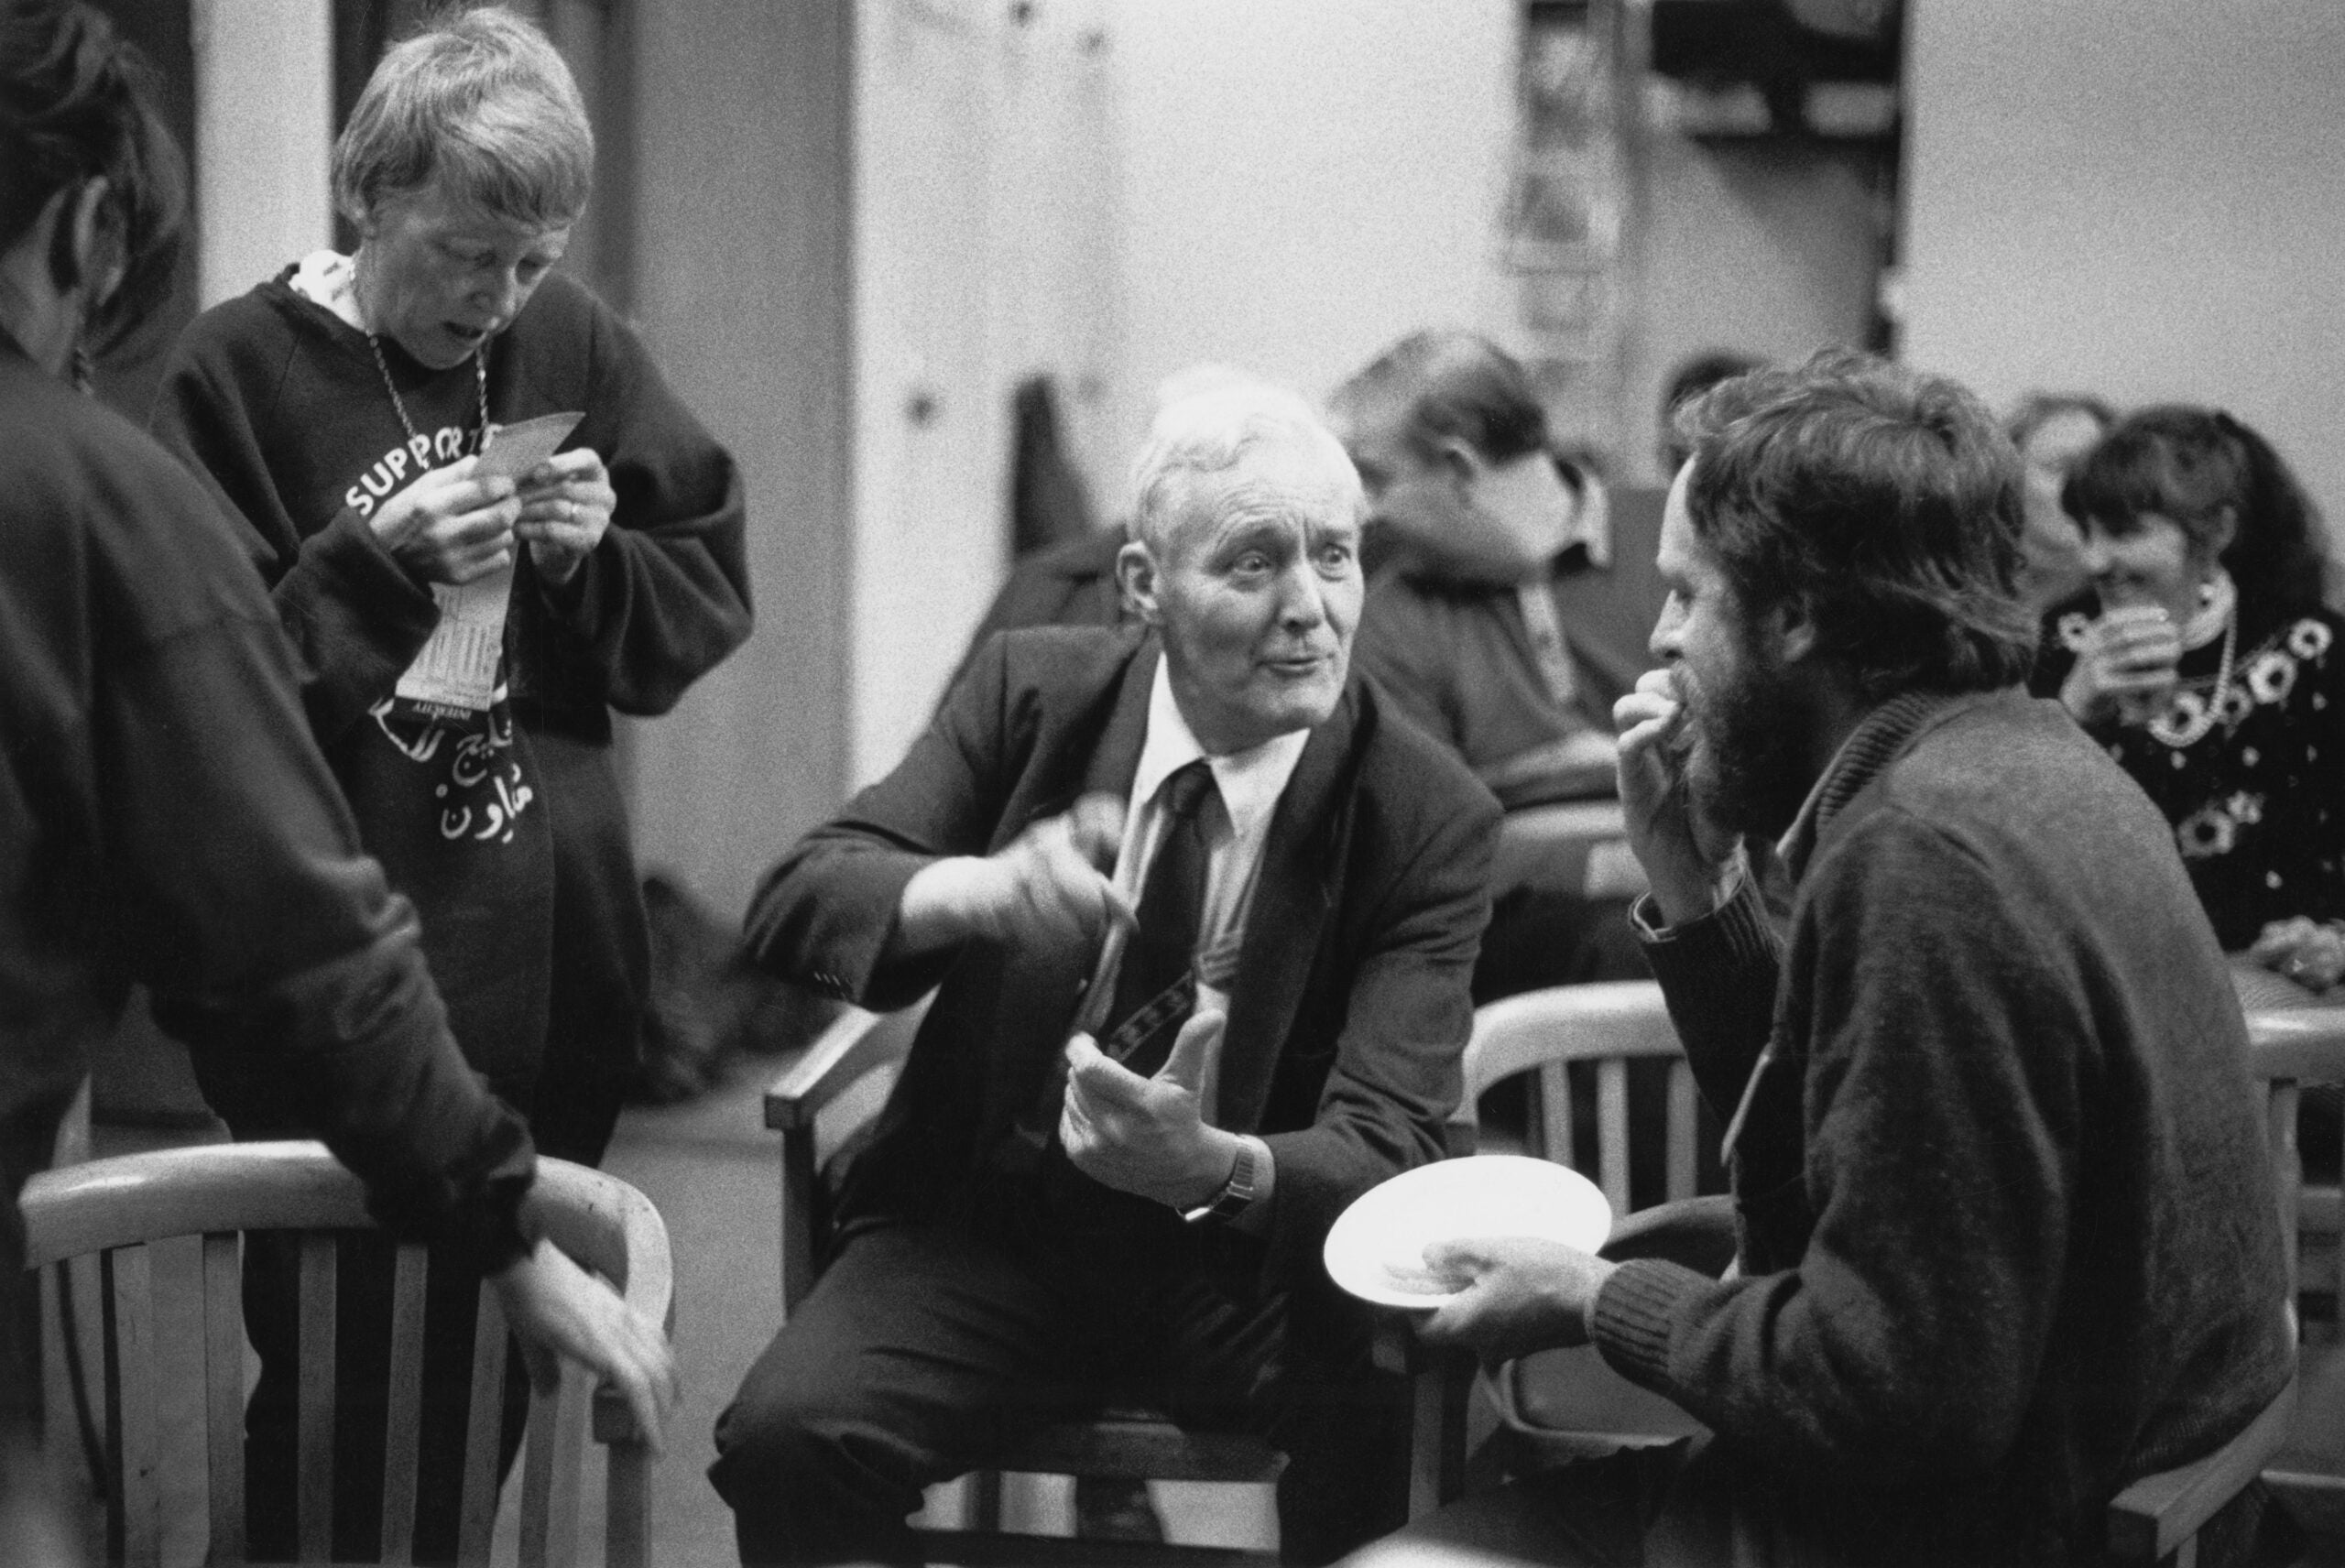 From the NS Archive: Tony Benn and a Labour leadership challenge